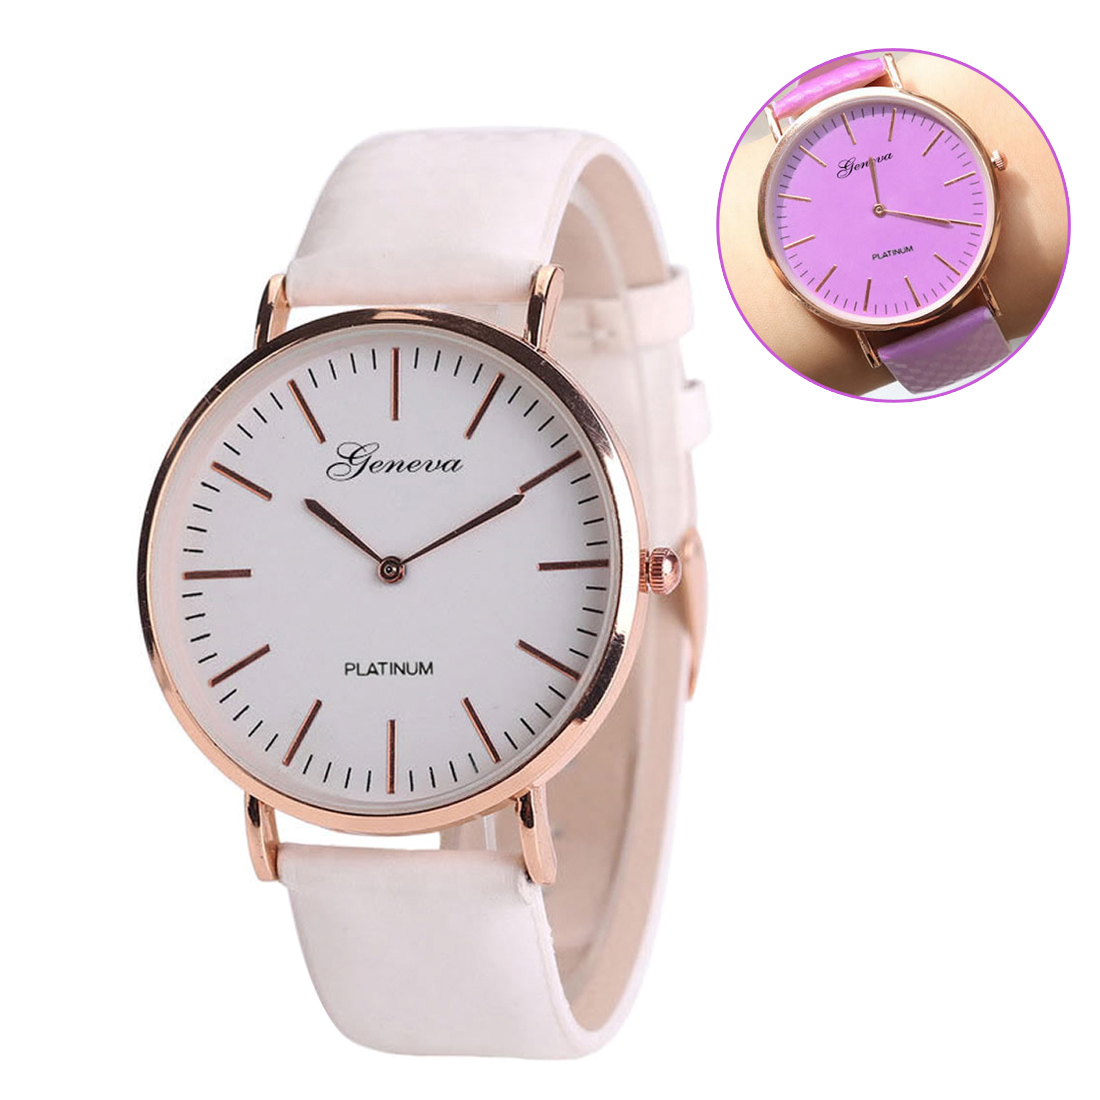 Purple Women Quartz Watches Leather Relogio Feminino Wristwatches New Fashion Watch Simple Style Female Clock Gift Elegant Hour 2017 new fashion tai chi cat watch casual leather women wristwatches quartz watch relogio feminino gift drop shipping